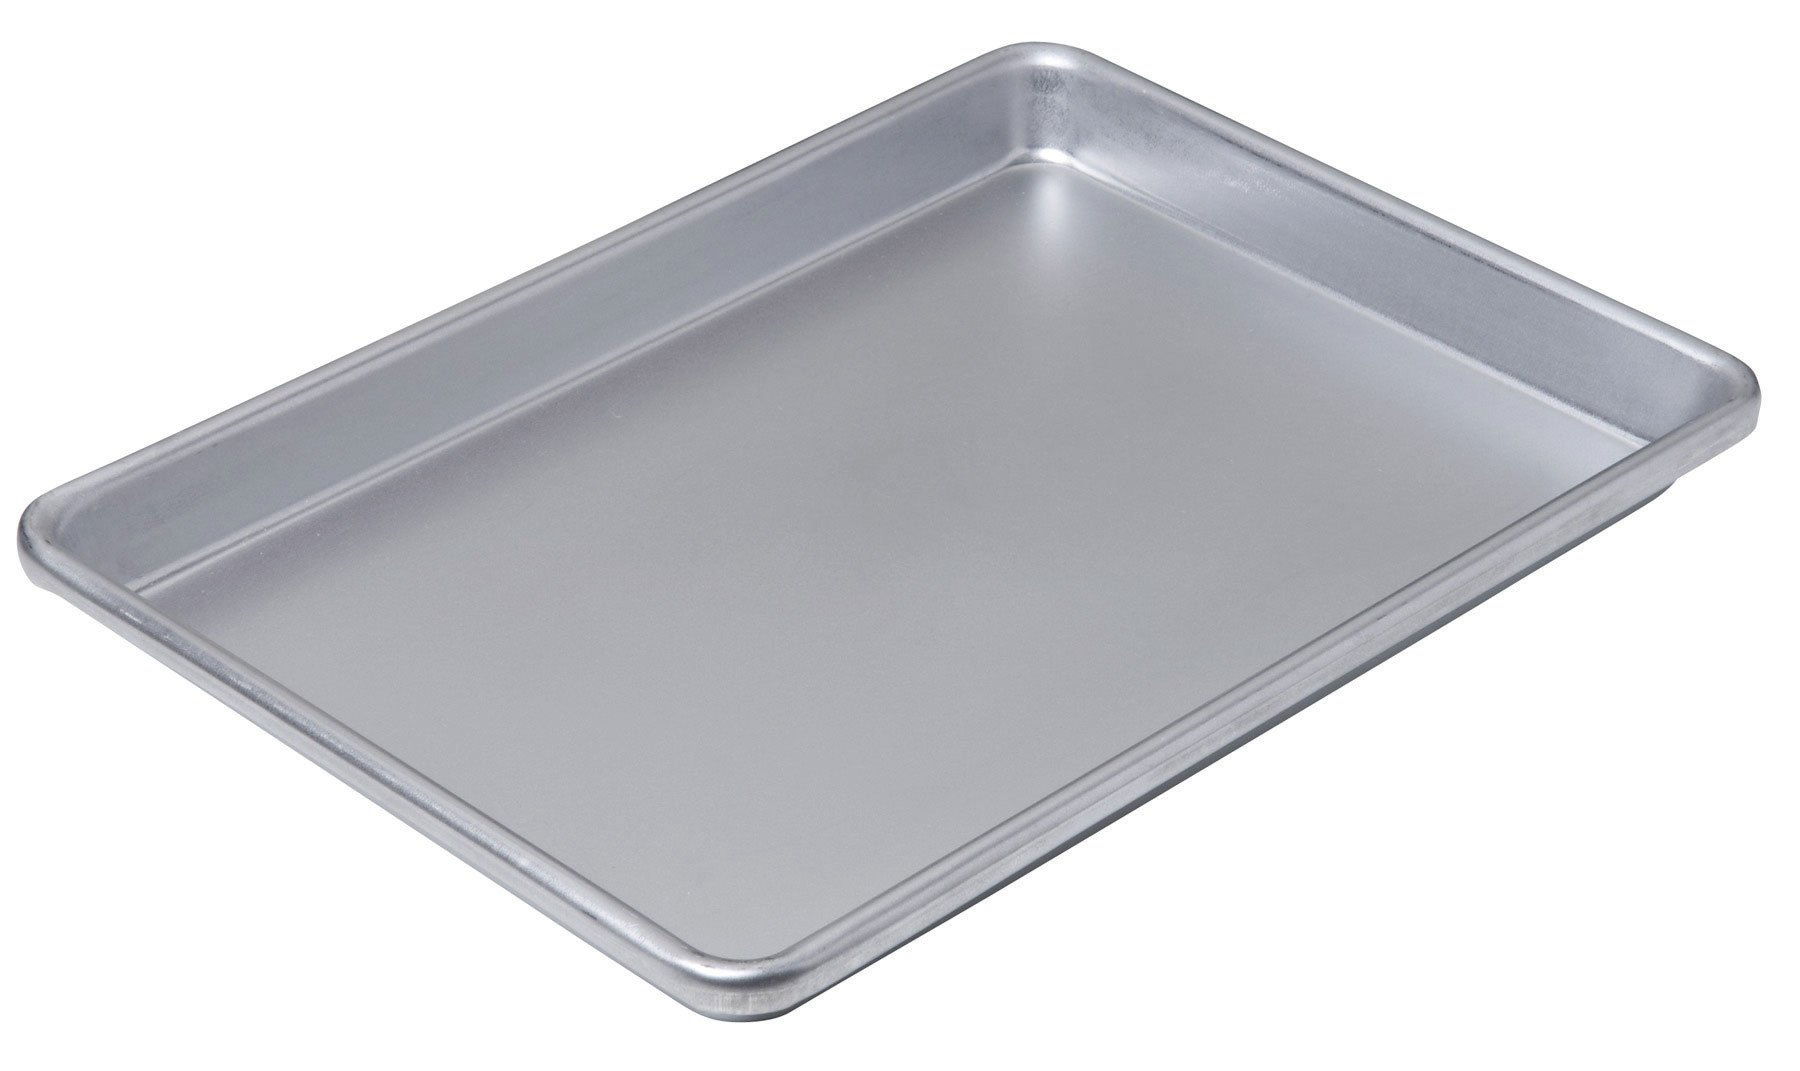 Chicago Metallic Commercial II Non-Stick Small Jelly Roll Pan, 13 by 9.5-Inch by Chicago Metallic